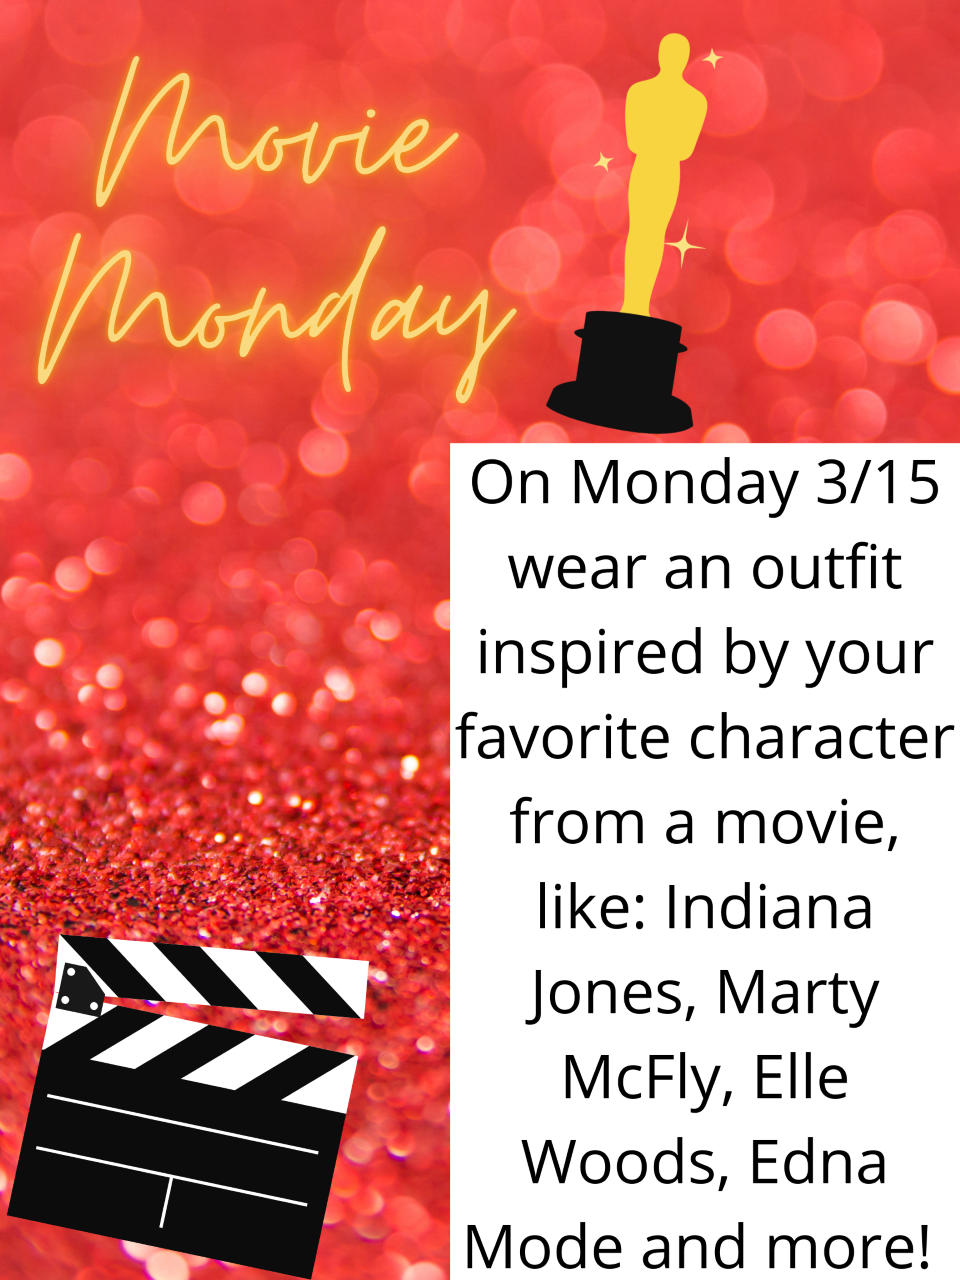 Monday 3/15: Wear an outfit inspired by your favorite character from a movie, like: Indiana Jones, Marty McFly, Elle Woods, Edna Mode and more!